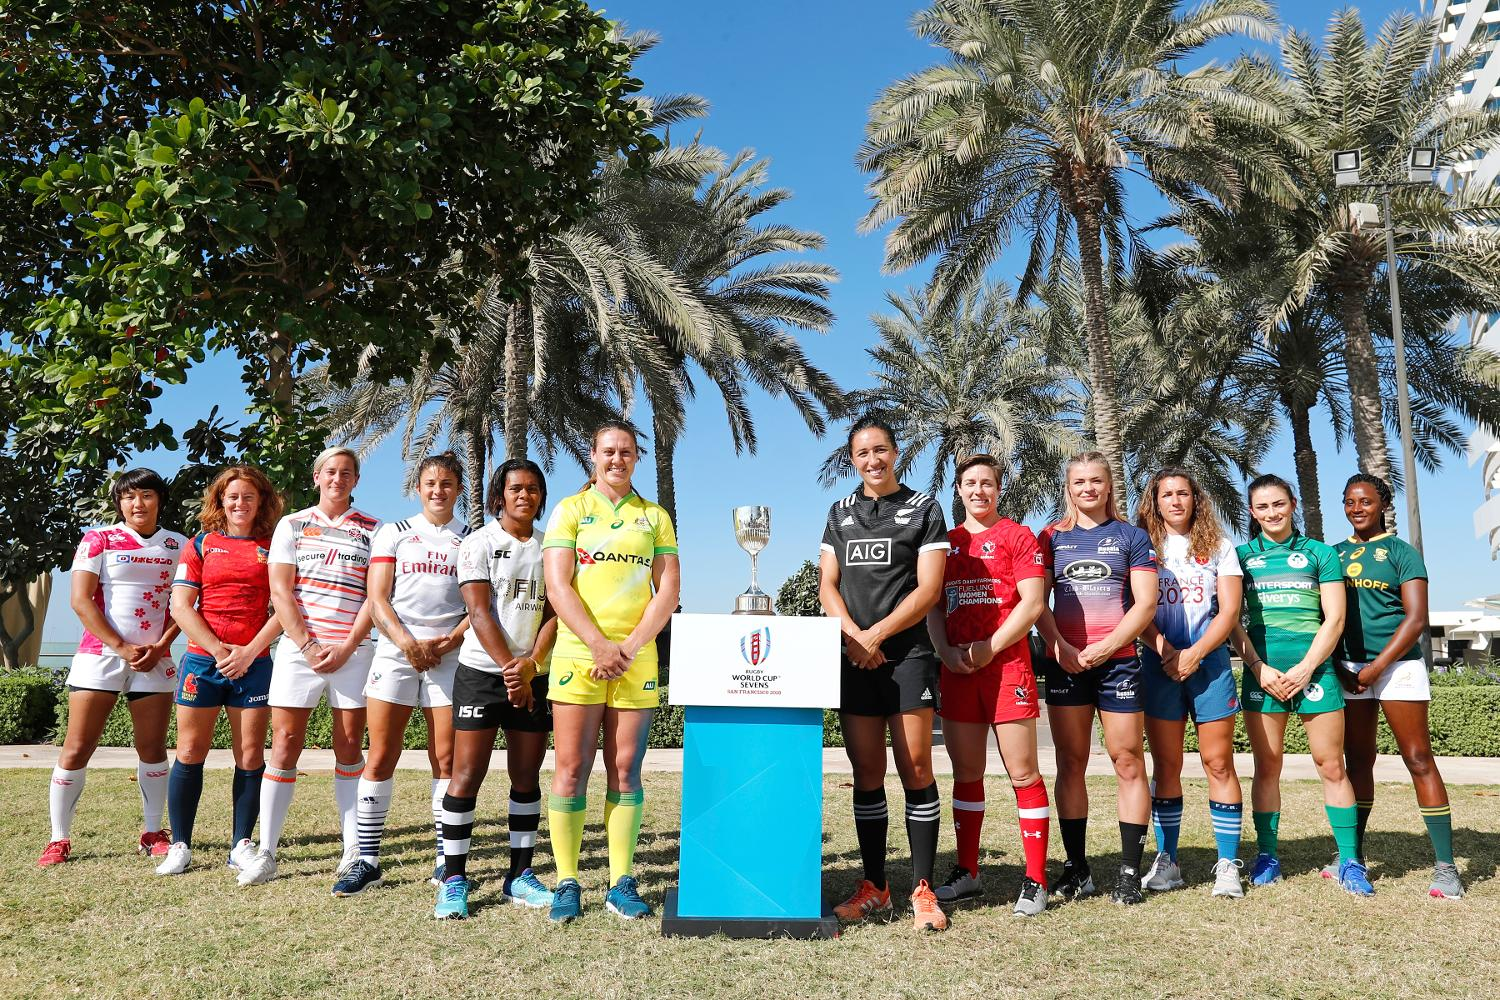 Rugby World Cup Sevens 2018 - Women's qualified teams in Dubai